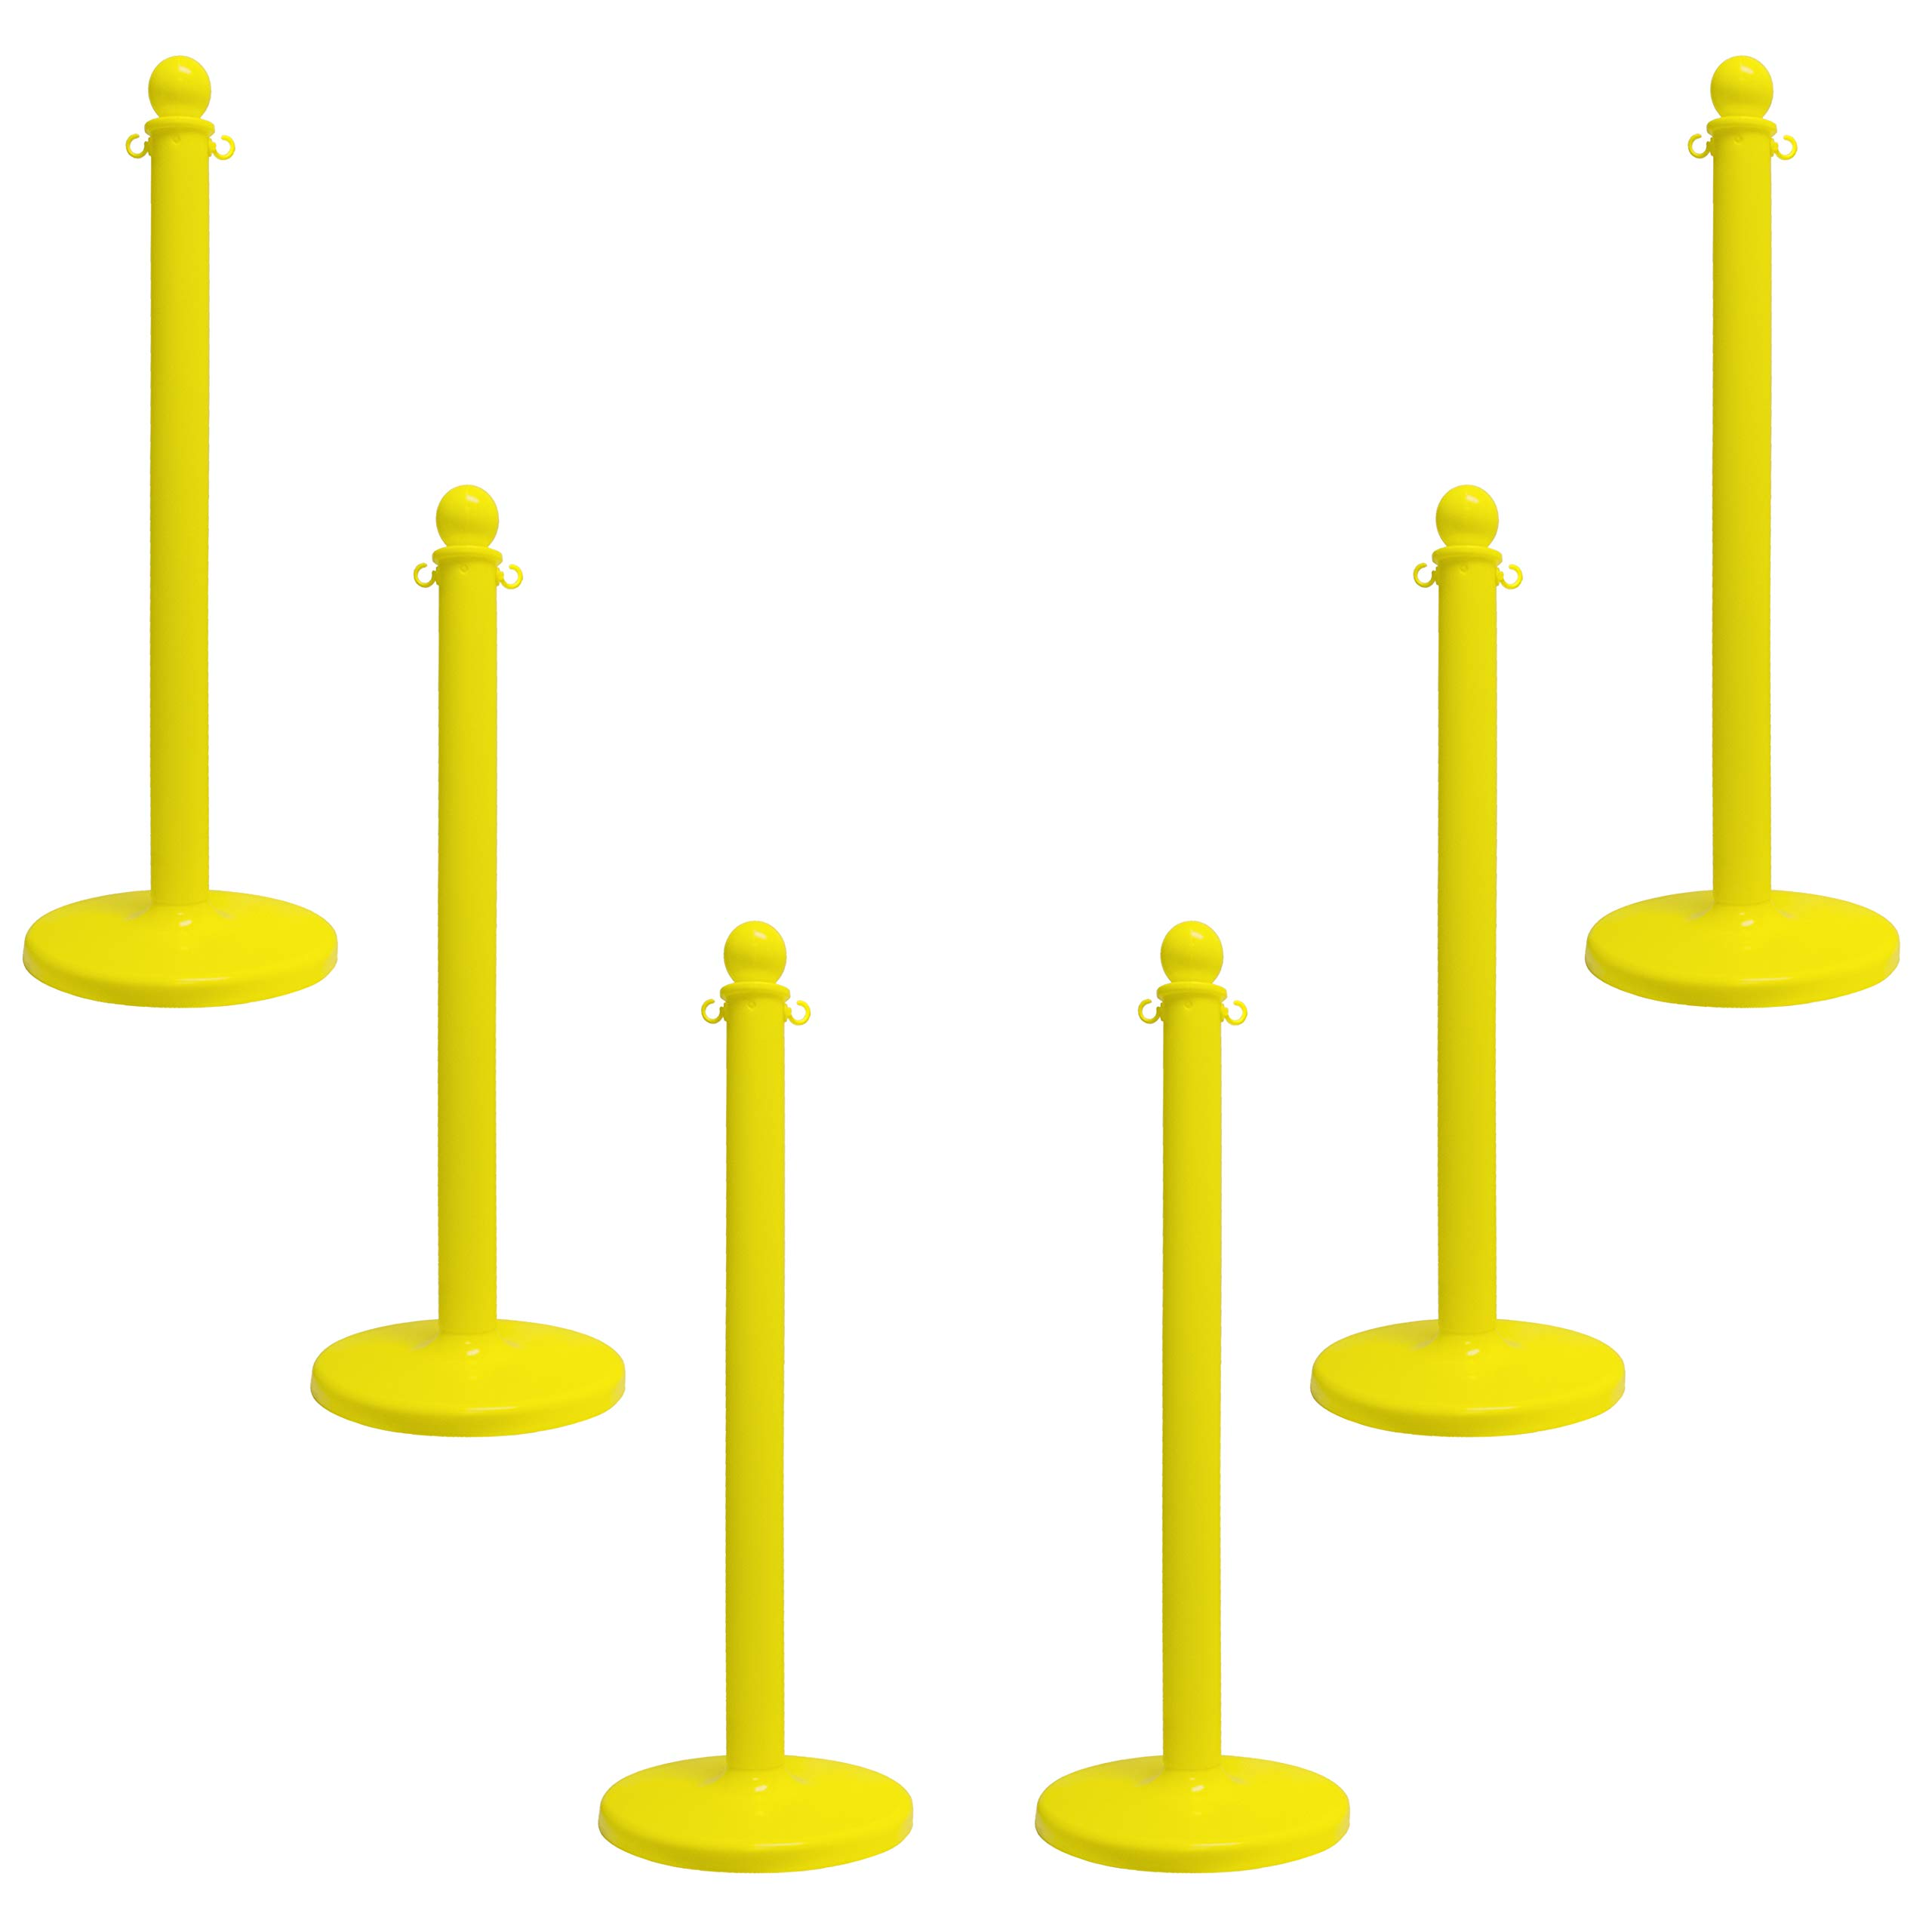 Mr. Chain 96402-6 Yellow Stanchion, 2.5'' link x 40'' Overall Height, Pack of 6 by Mr. Chain